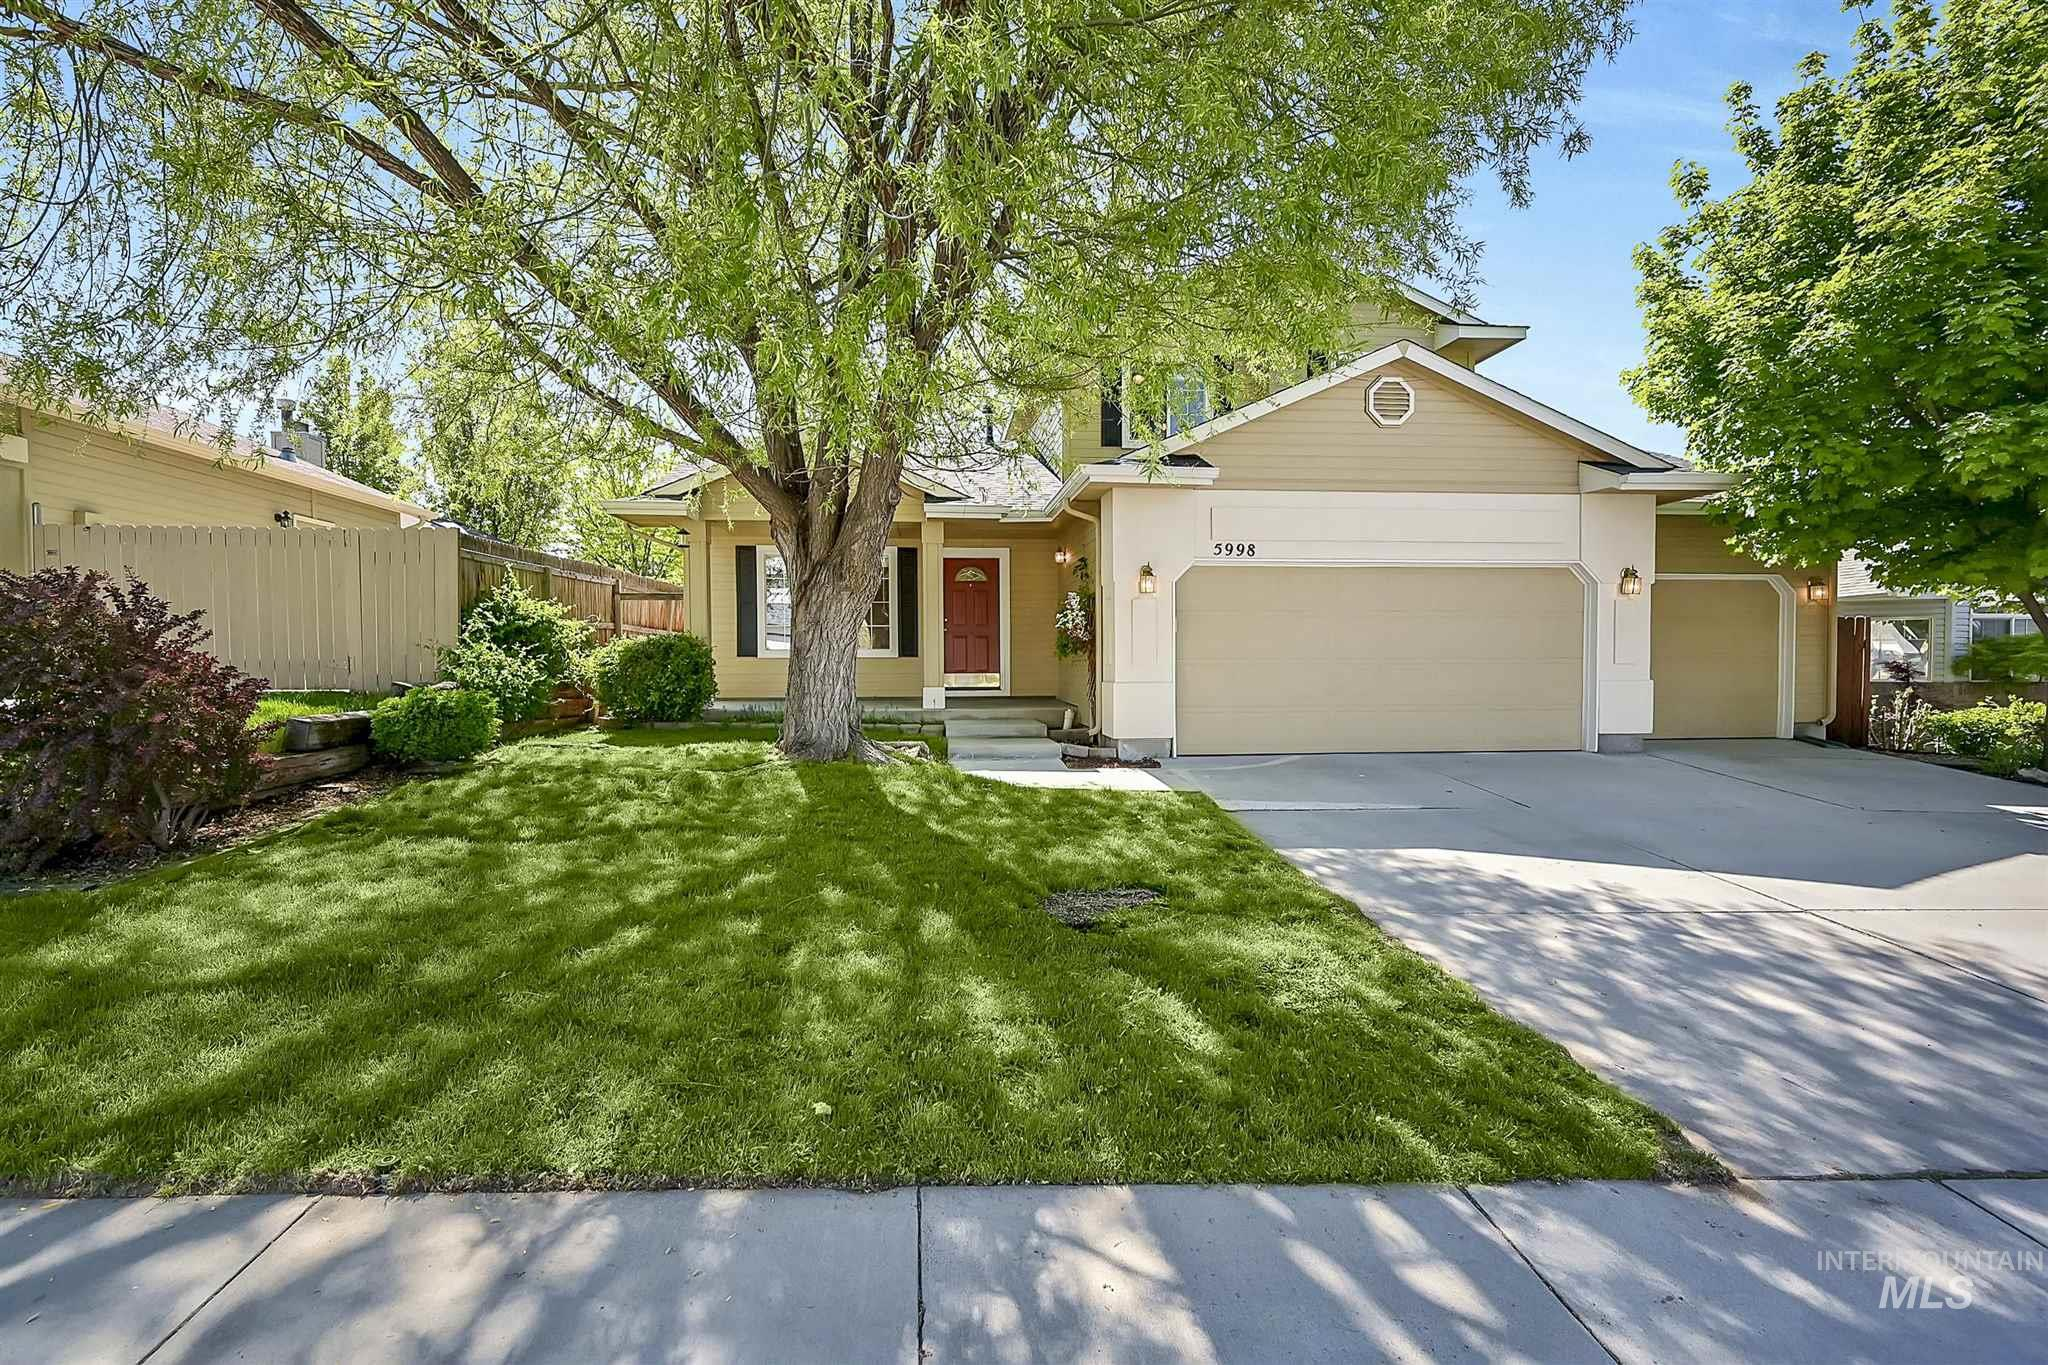 5998 S Wallflower Pl Property Photo - Boise, ID real estate listing